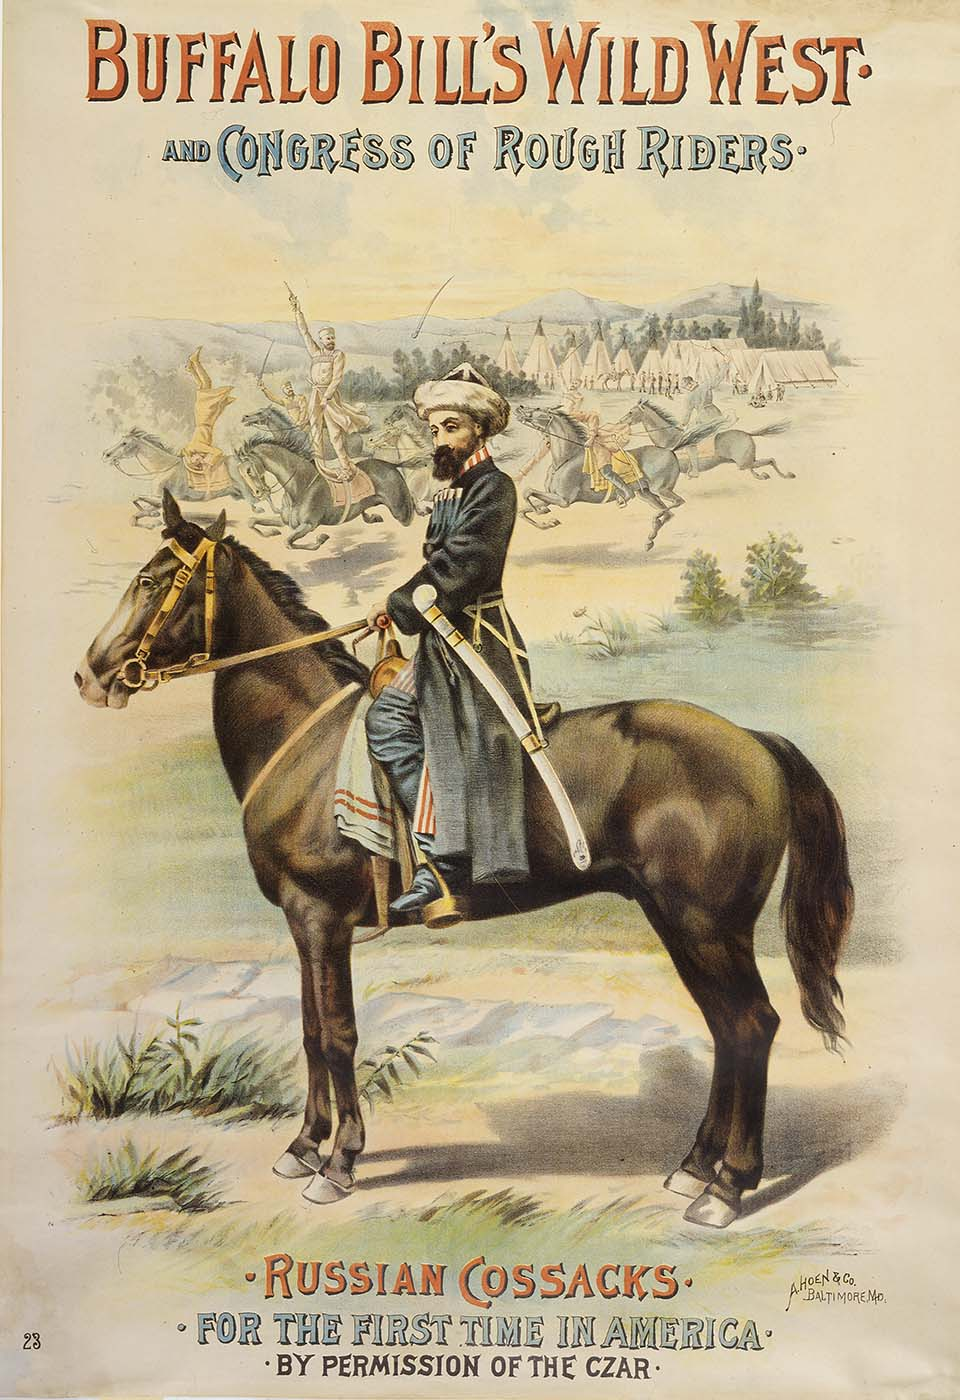 Russian Cossacks for the First Time in America by Permission of the Czar Wild West poster, 1893. Gift of the Coe Foundation. 1.69.123